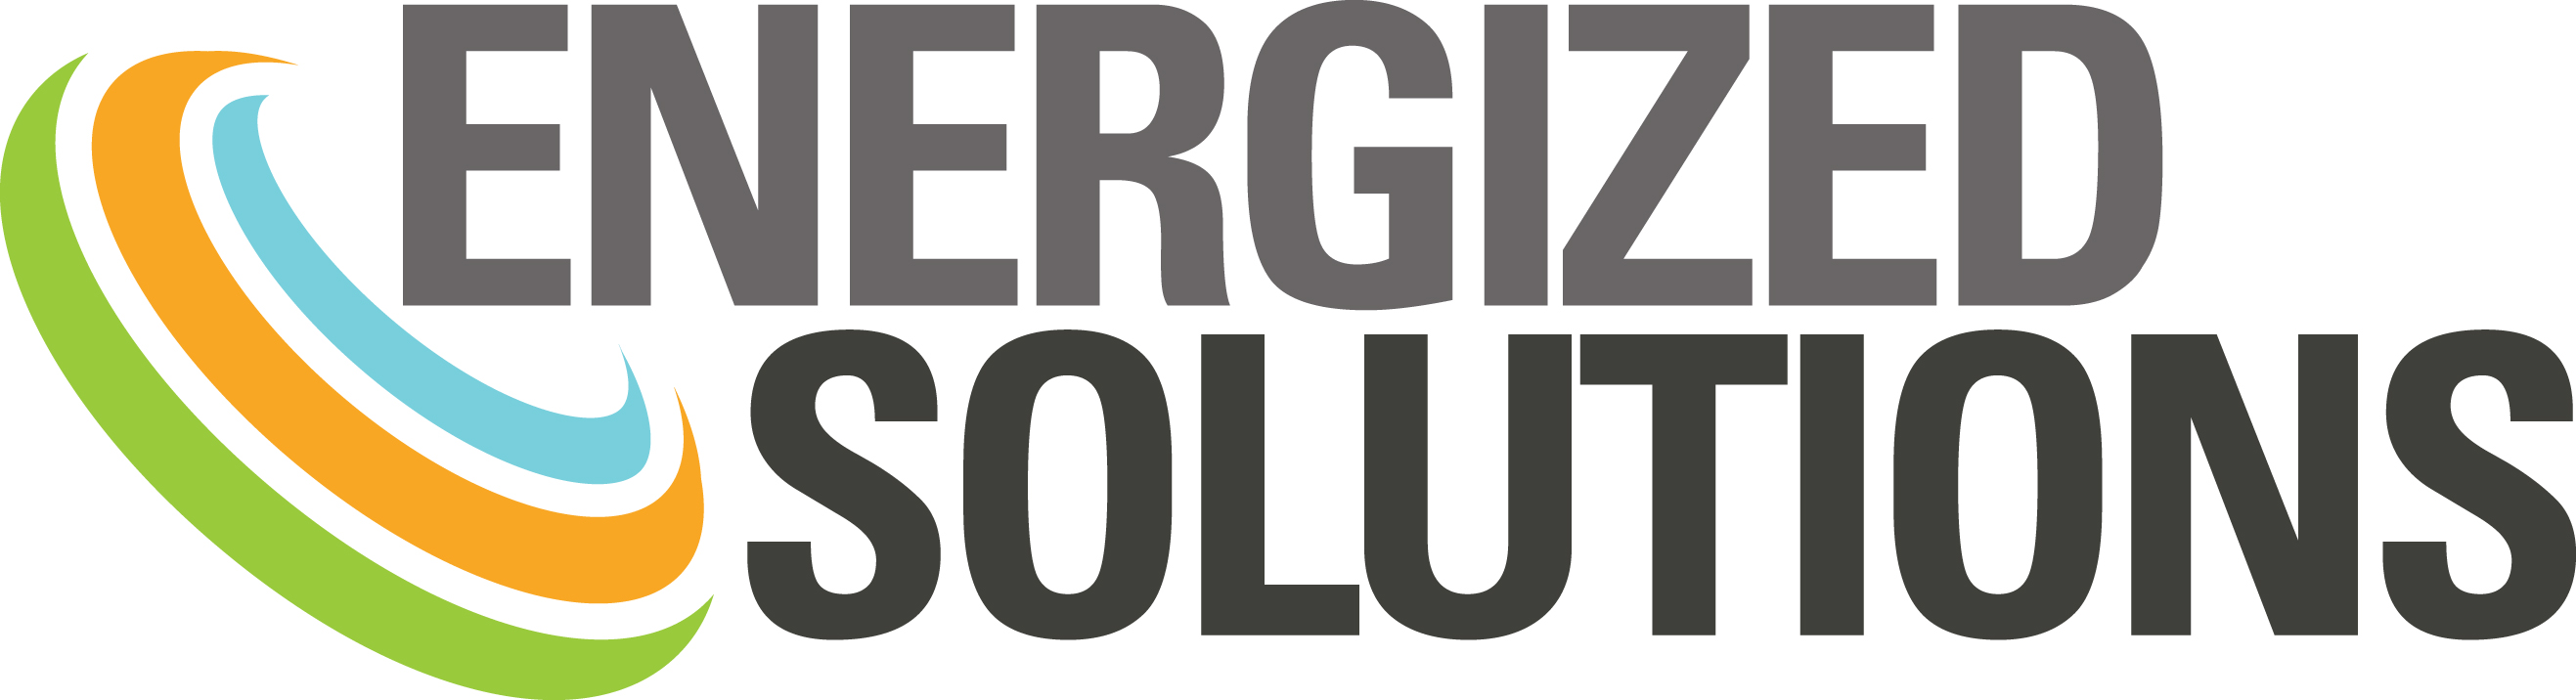 Energized Solutions